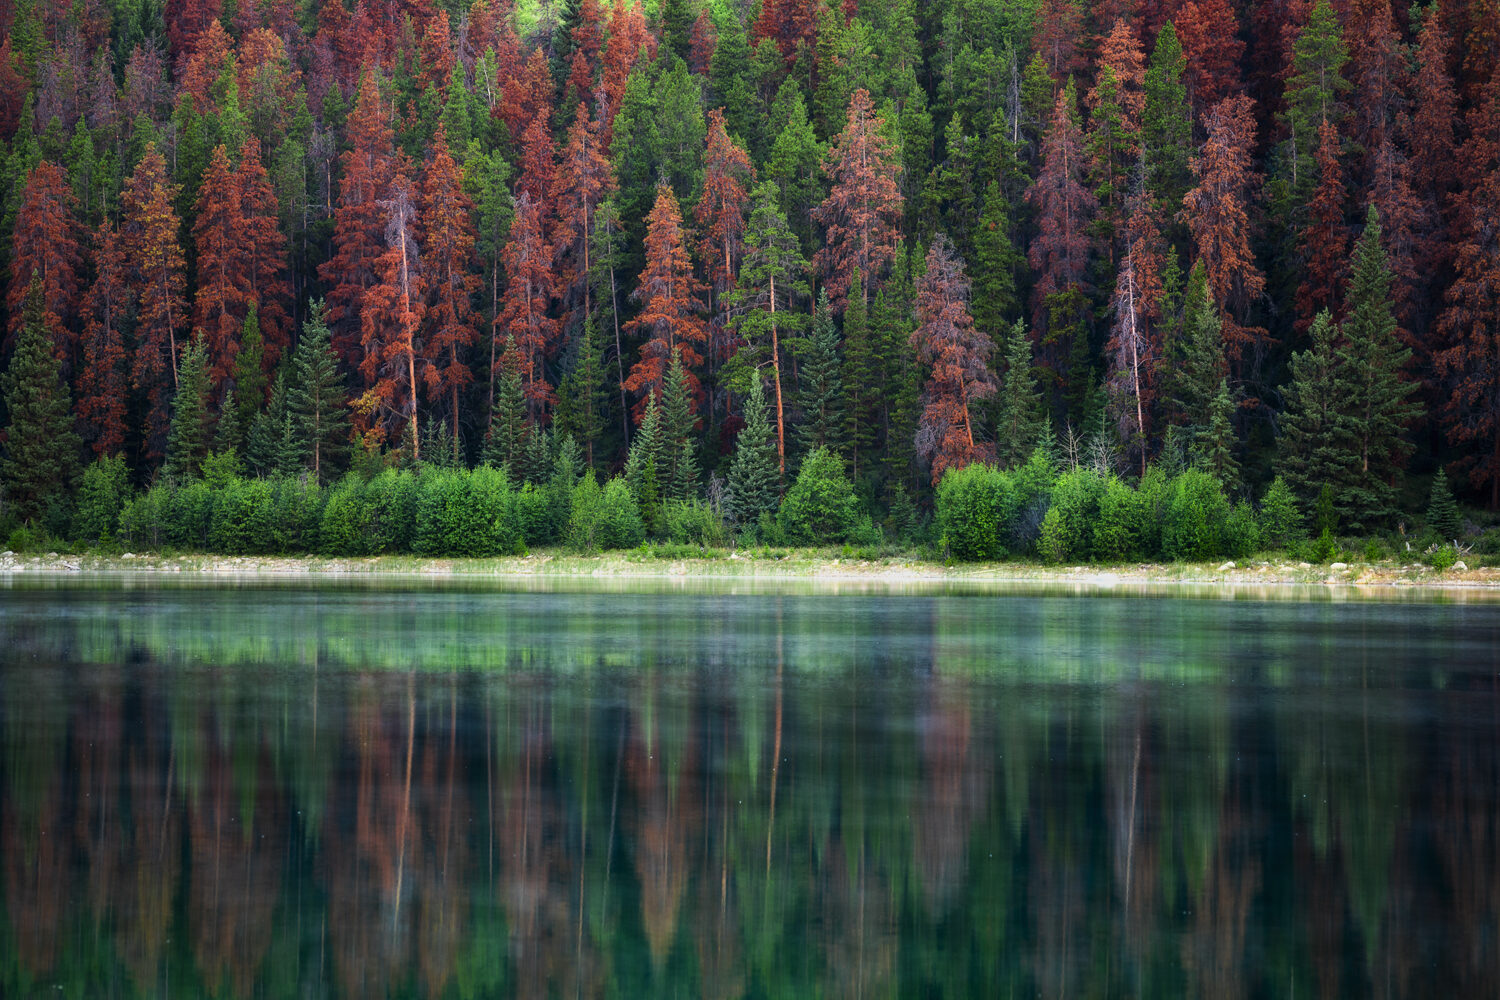 Canadian pine trees